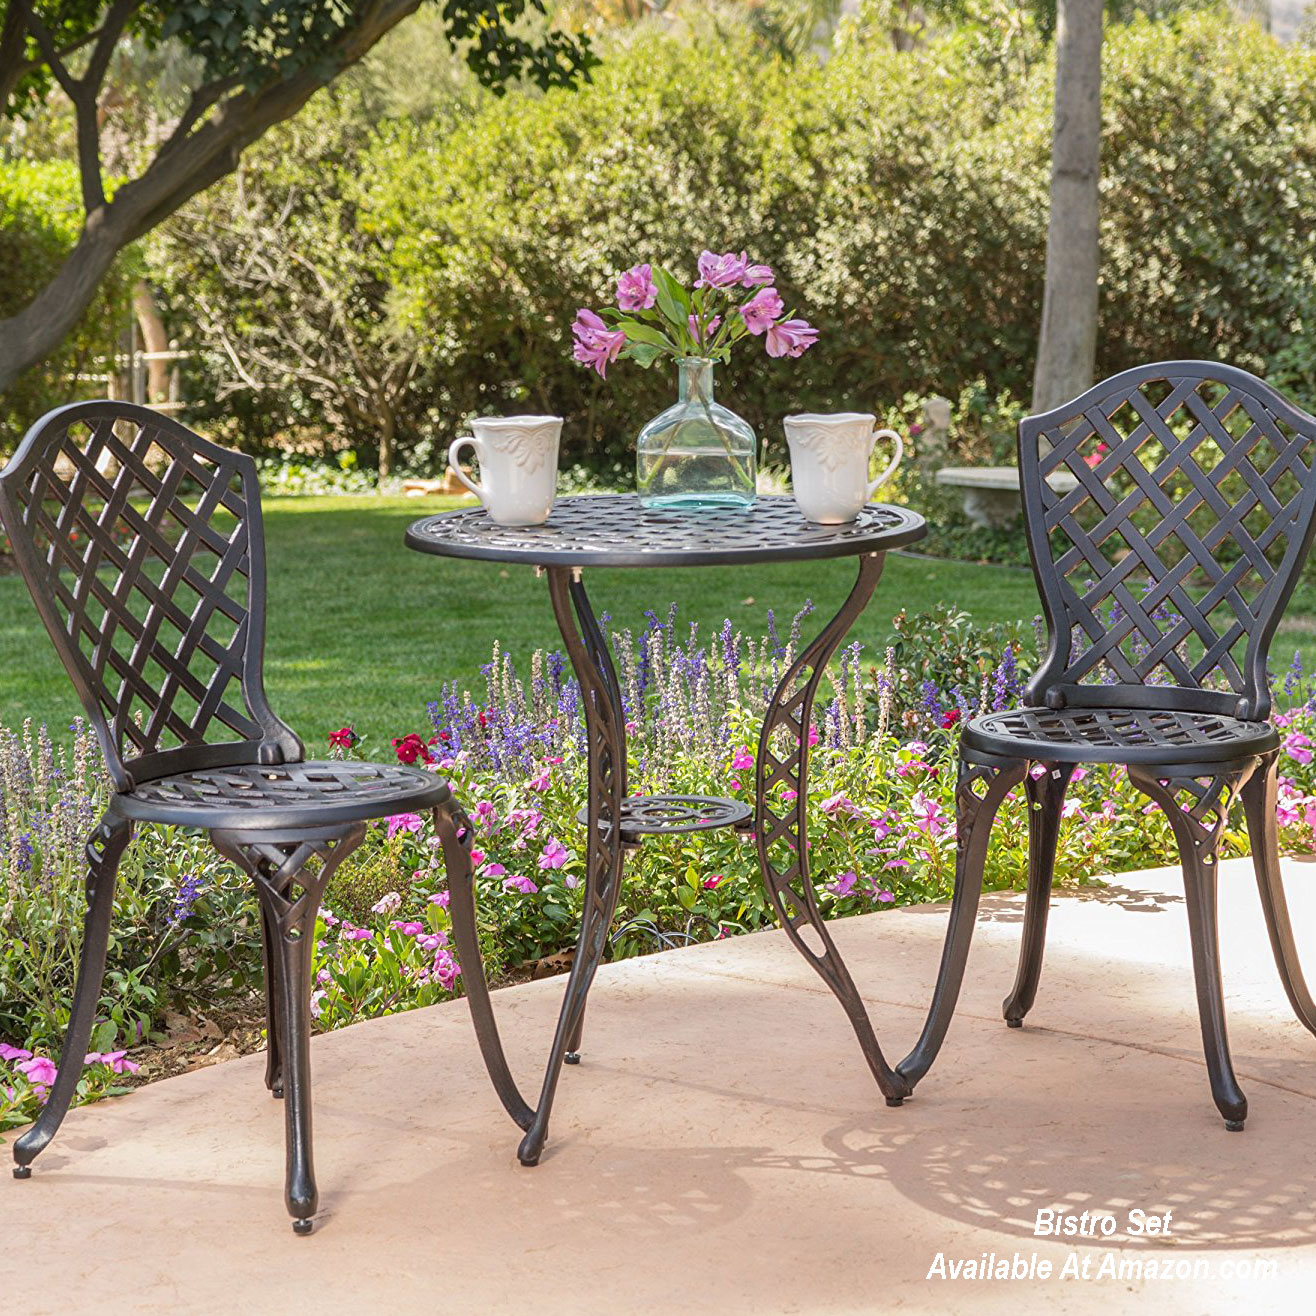 bistro set on patio area